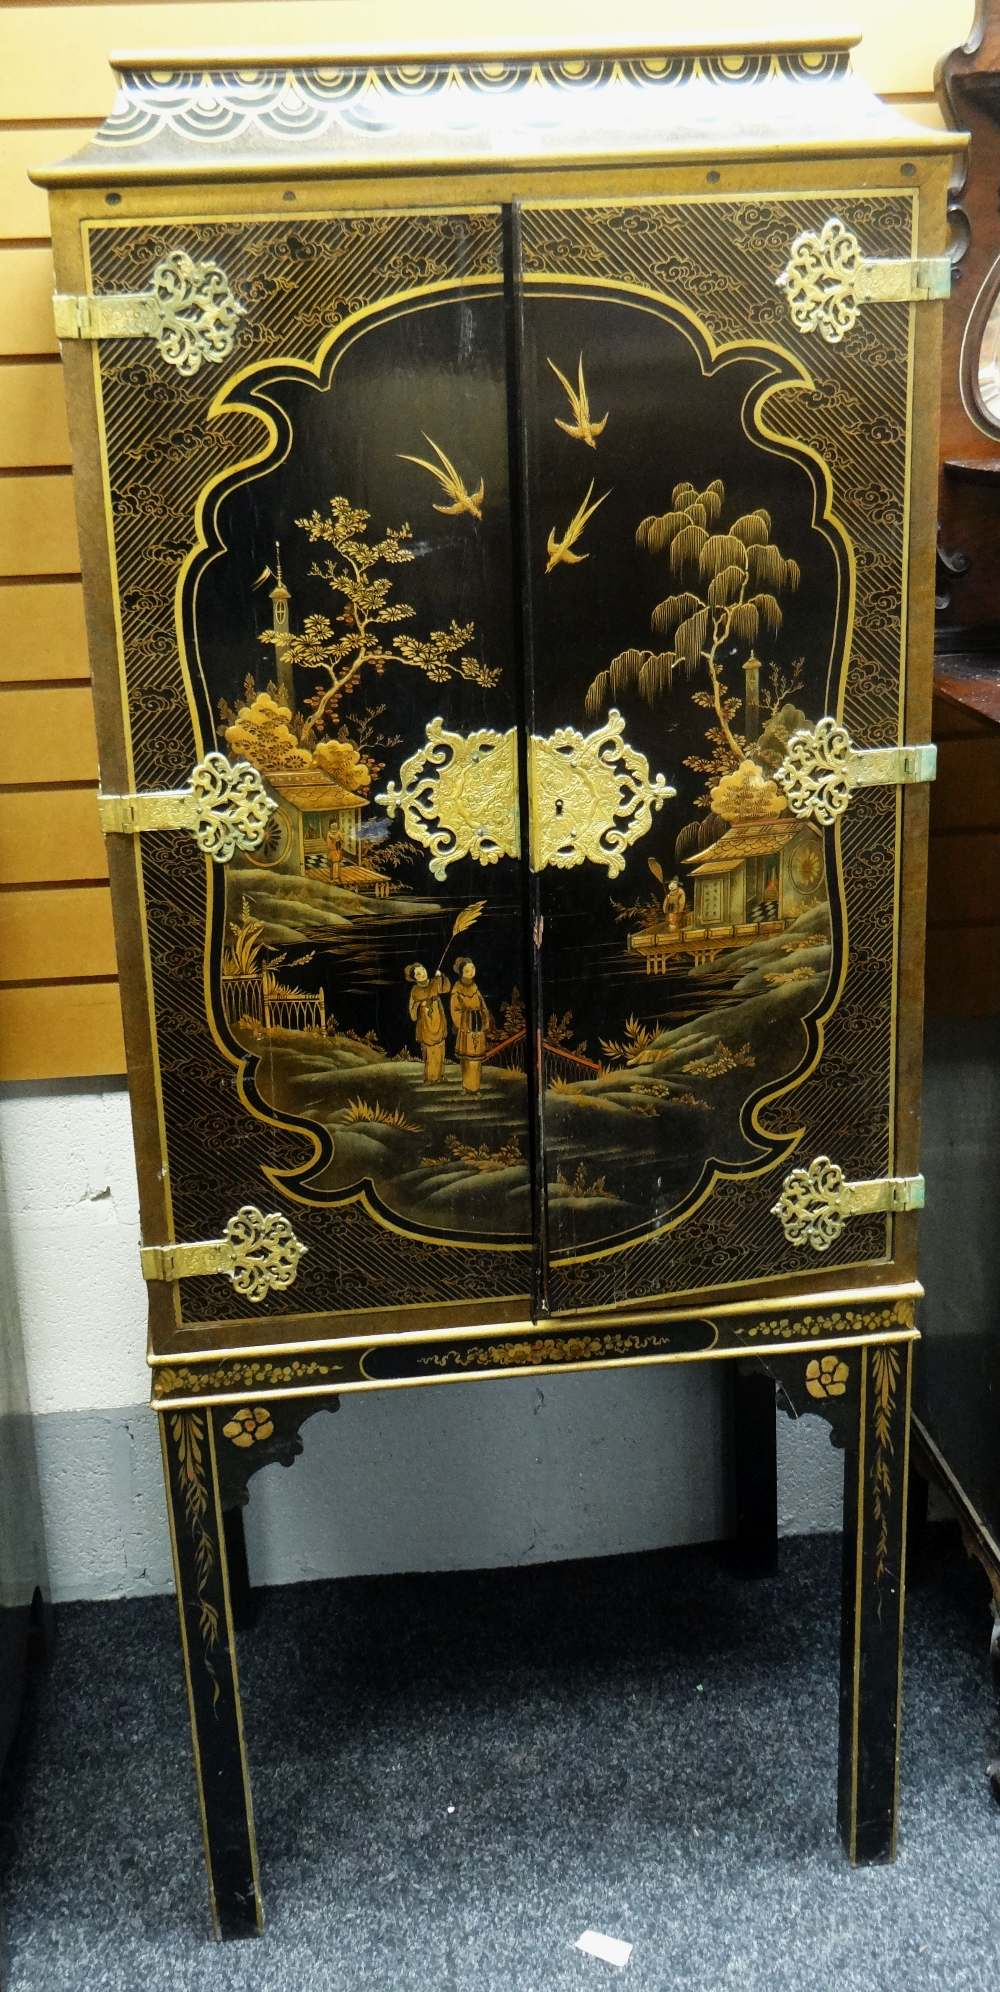 Lot 13 - 20TH CENTURY JAPANNED CABINET, two doors centred with large village scene with figures, decorative